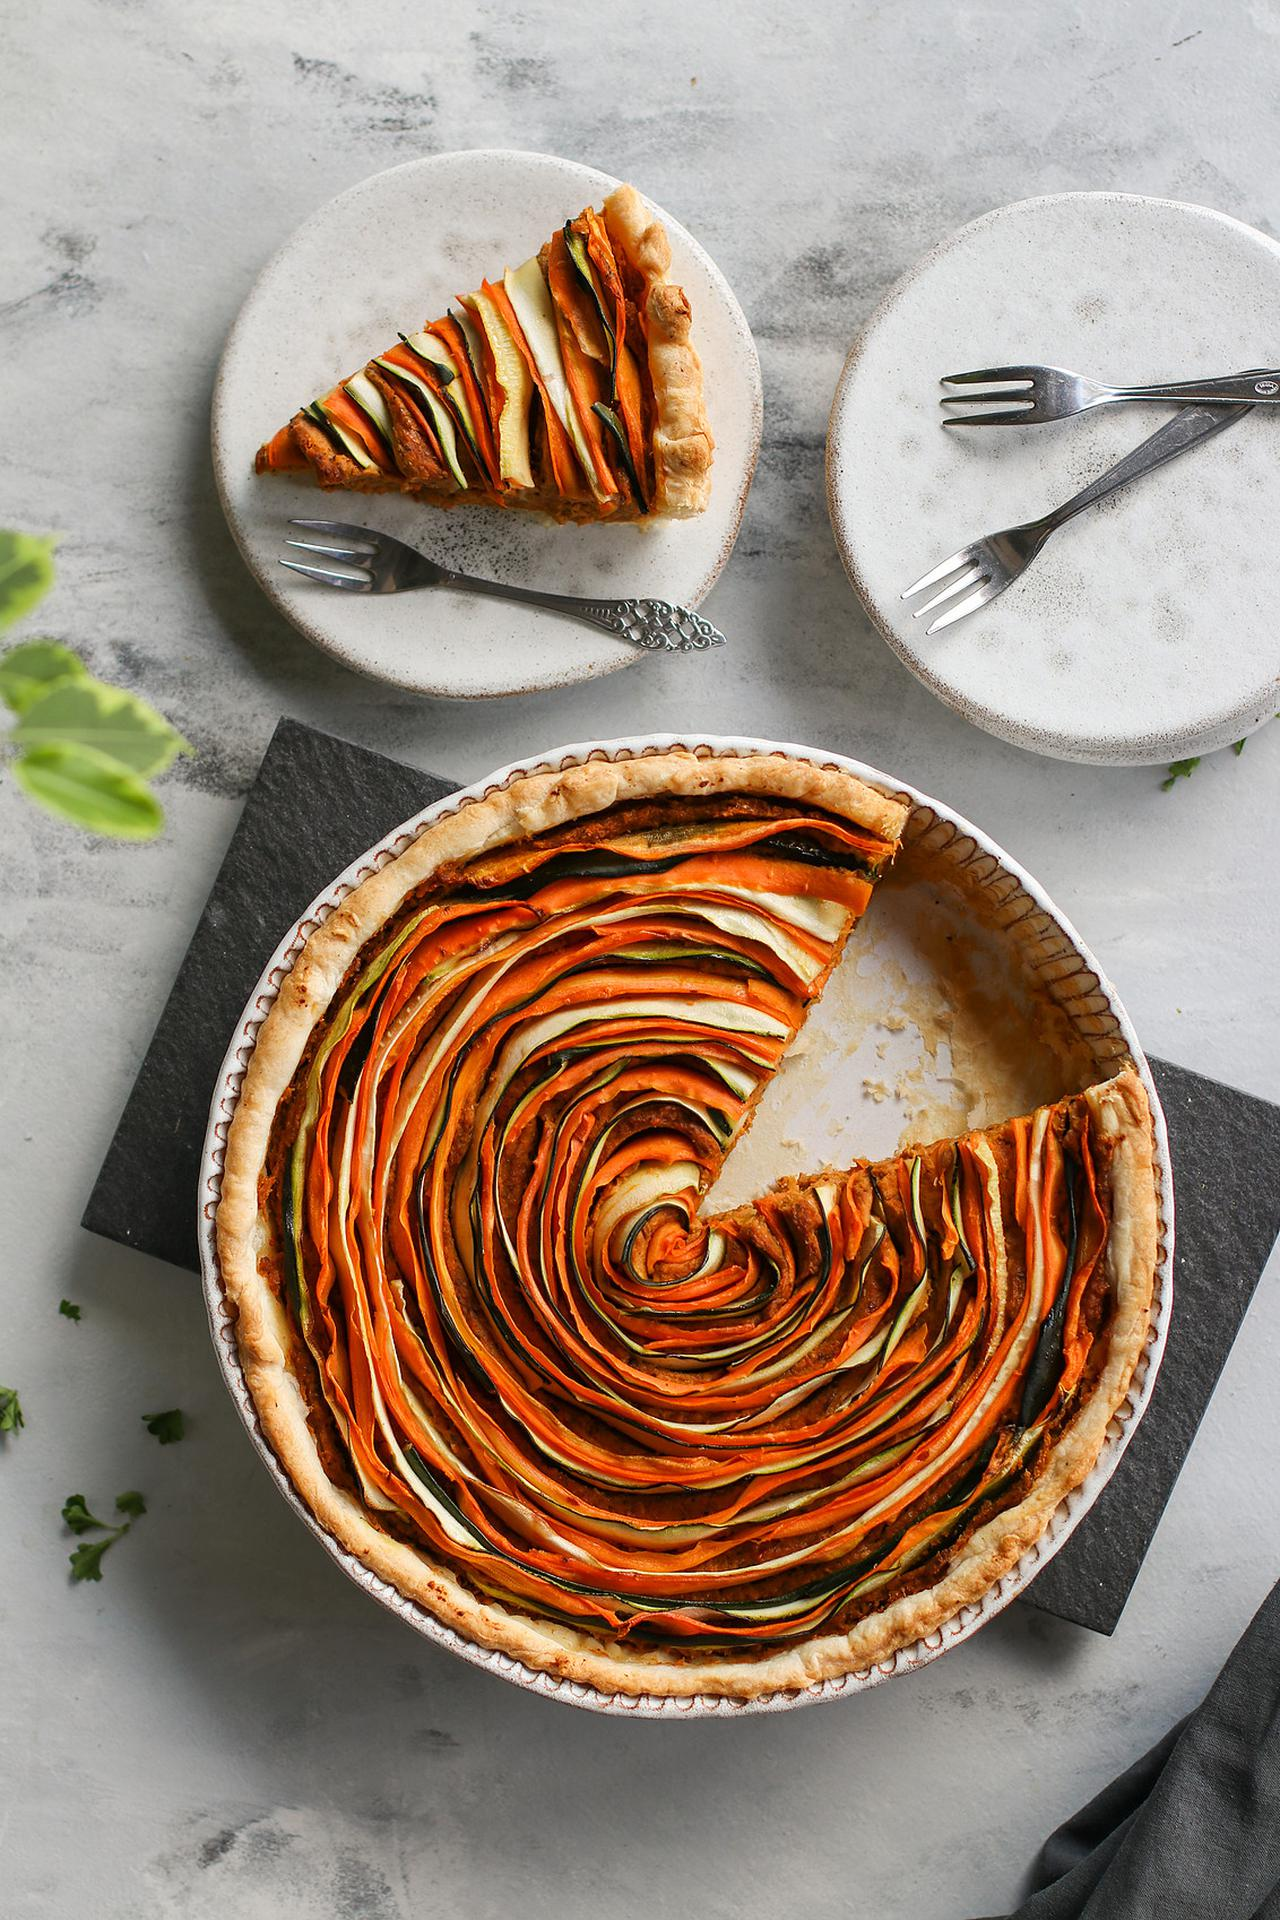 Main image of Sun-Dried Tomato & Roasted Vegetable Tart